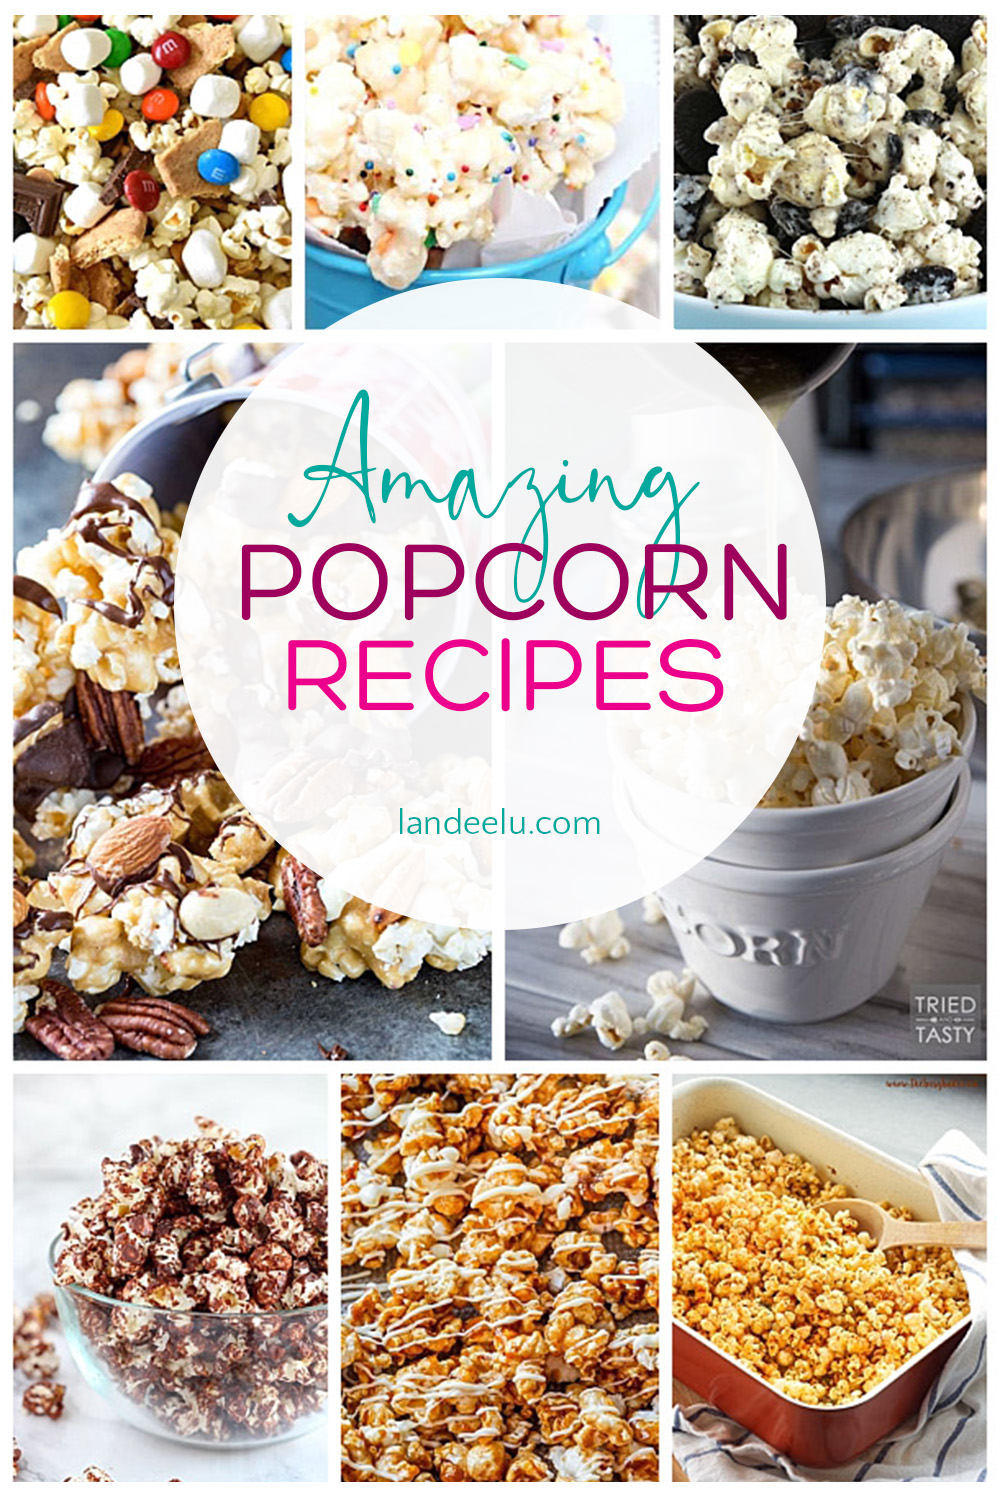 Try one of these yummy popcorn recipes for family night... everyone will love it! #popcorn #popcornrecipes #bestpopcorn #poppedcorn